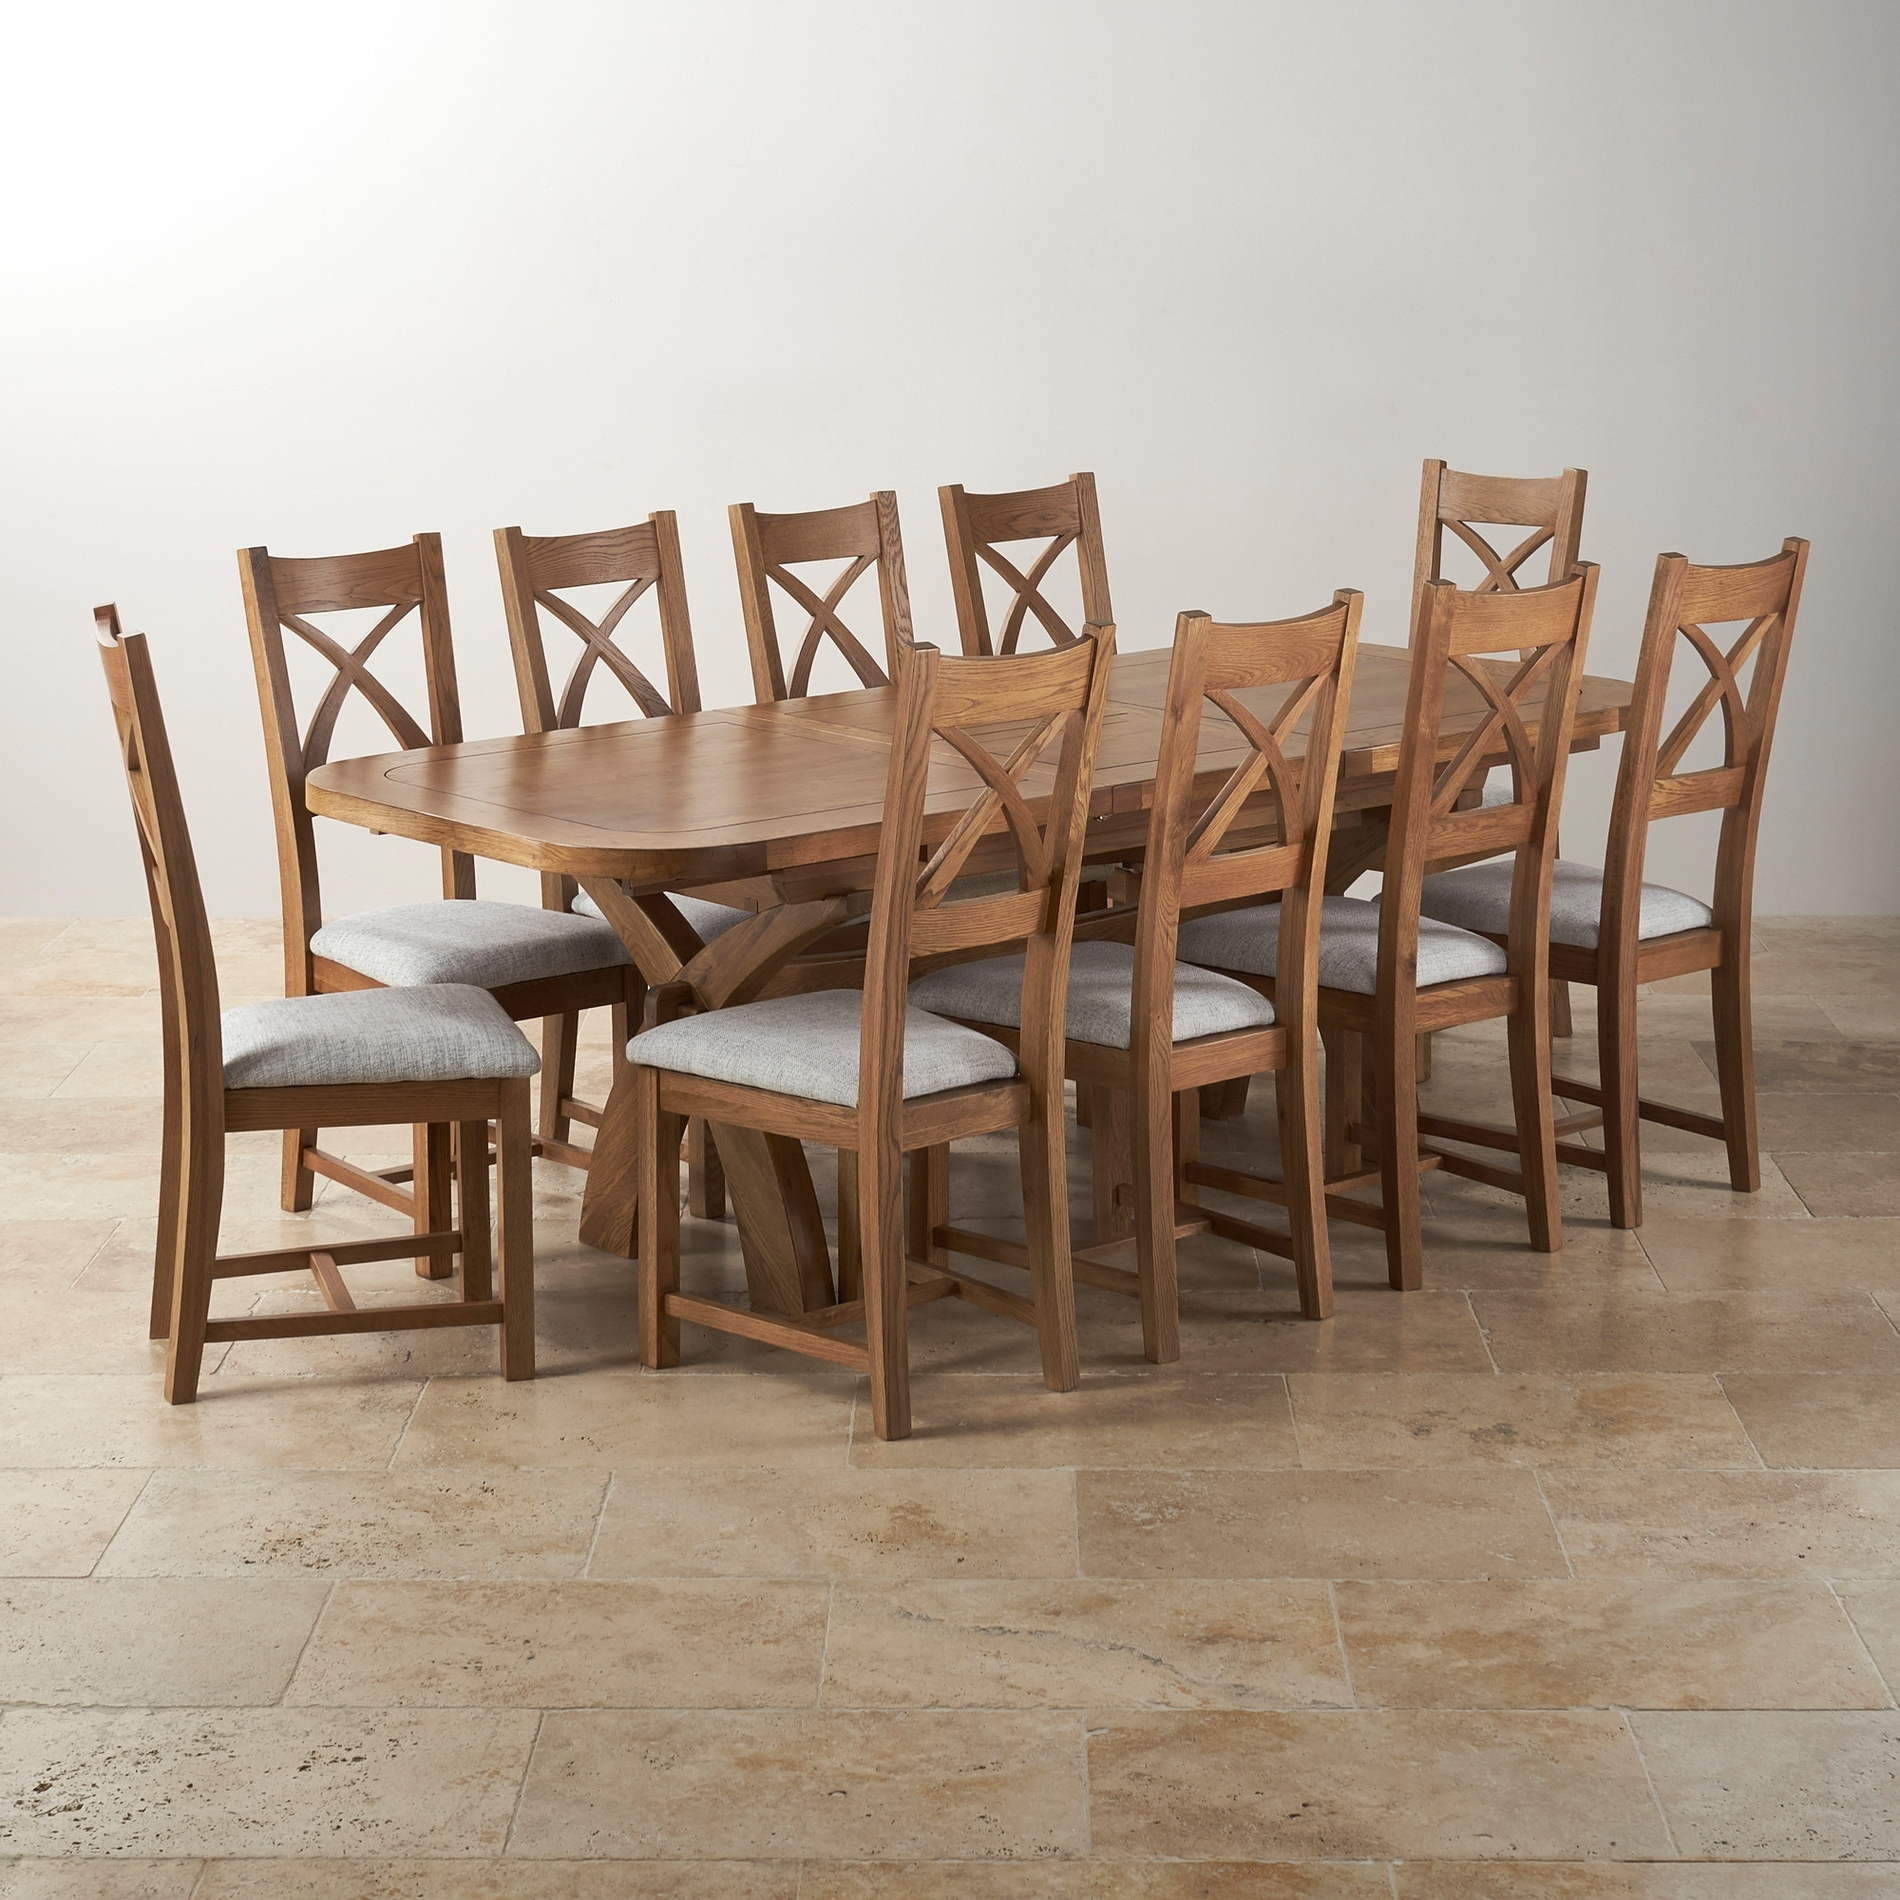 Fashionable Rustic Oak Dining Tables Inside Hercules Dining Set In Rustic Oak – Extending Table + 10 Chairs (View 17 of 25)